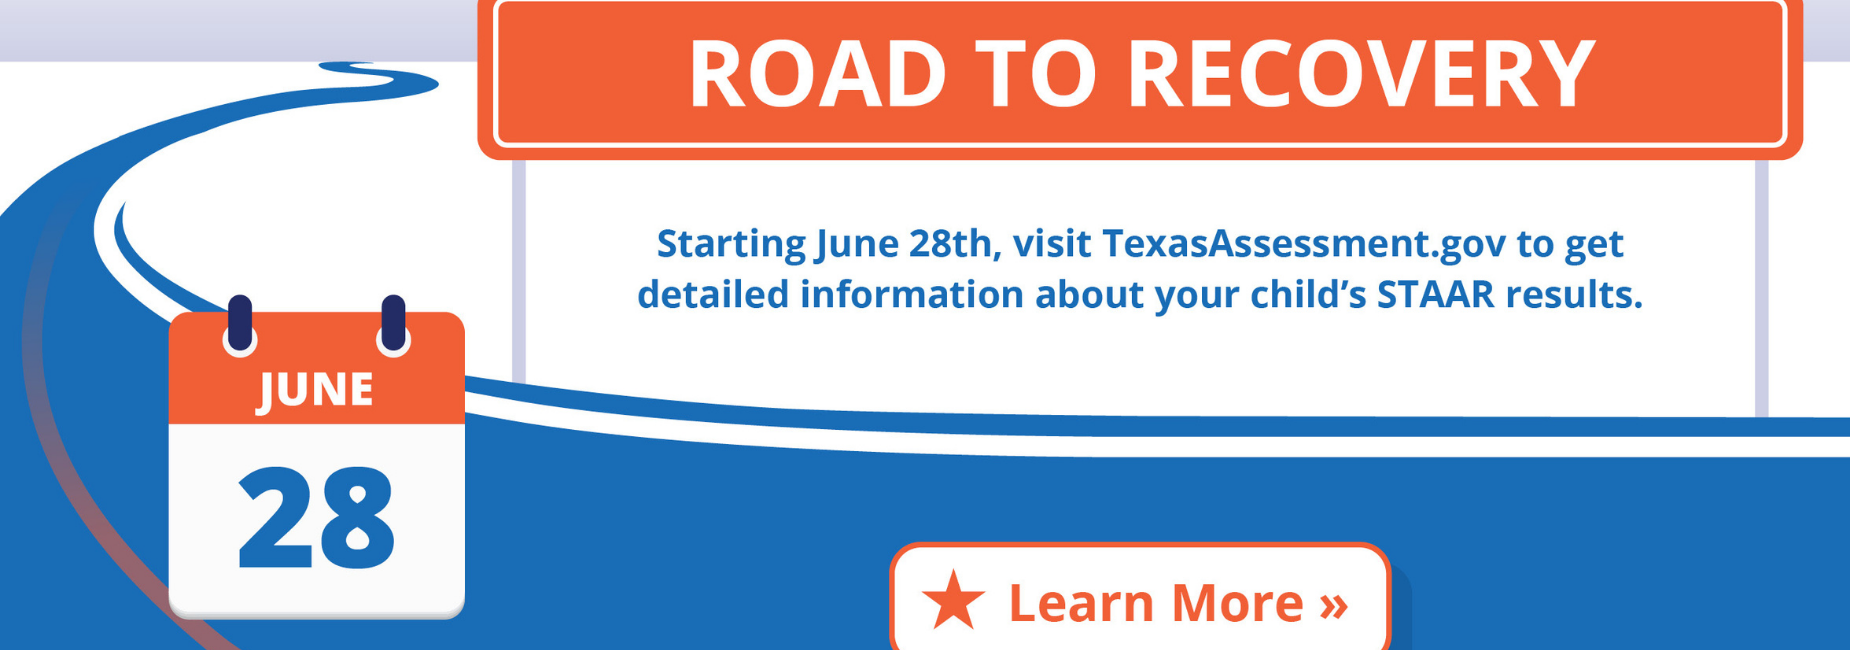 graphic explains visiting the TEA website for STAAR results beginning June 28